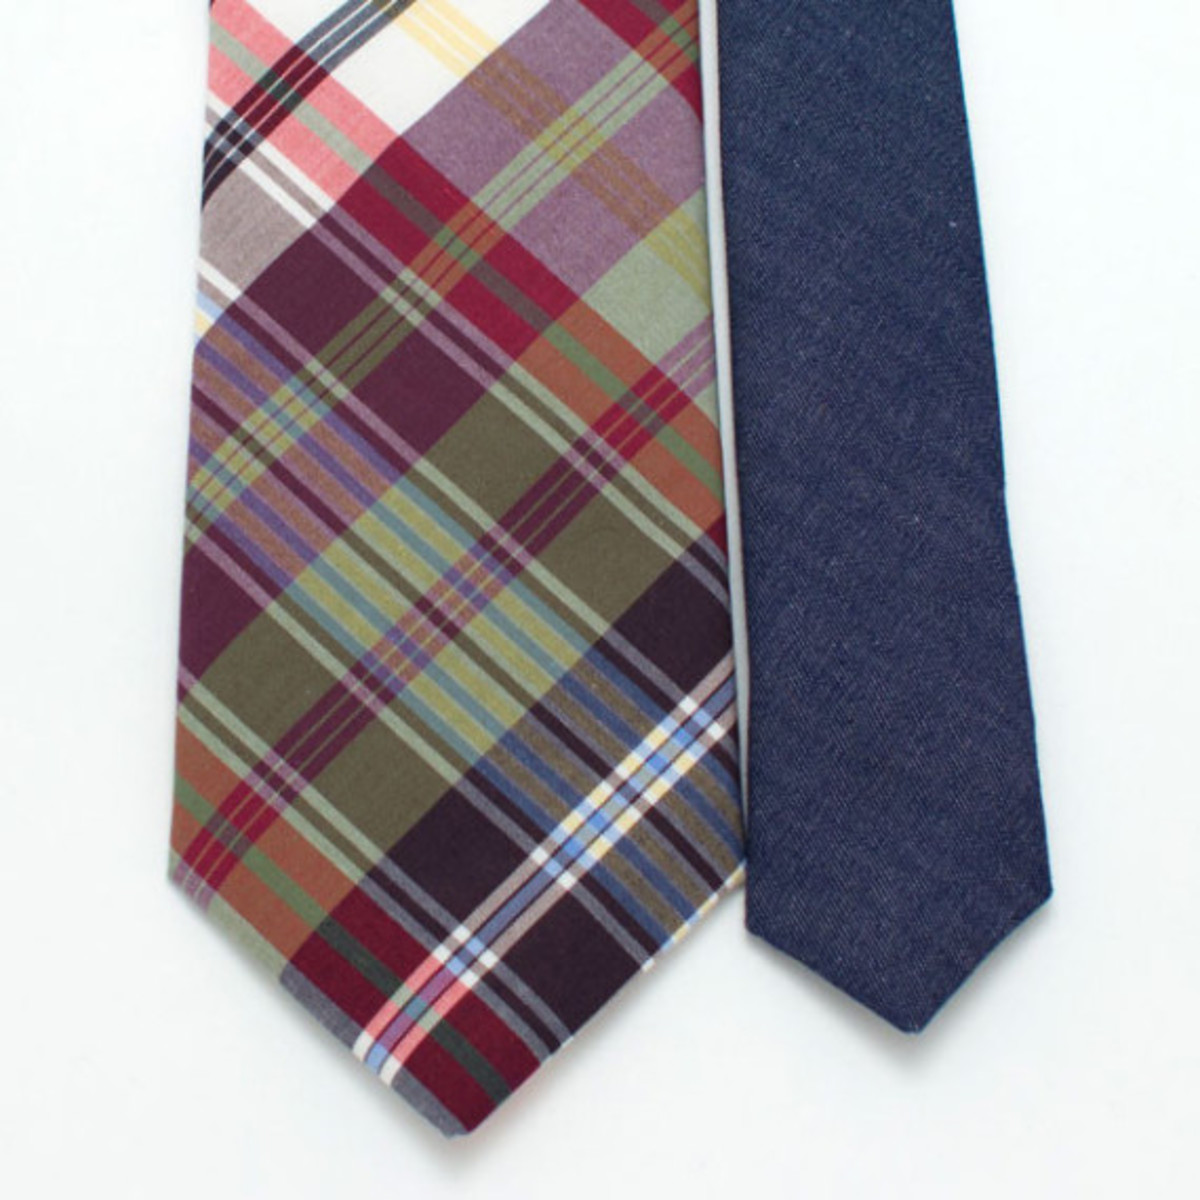 general-knot-and-co-portland-family-neckwear-collection-02